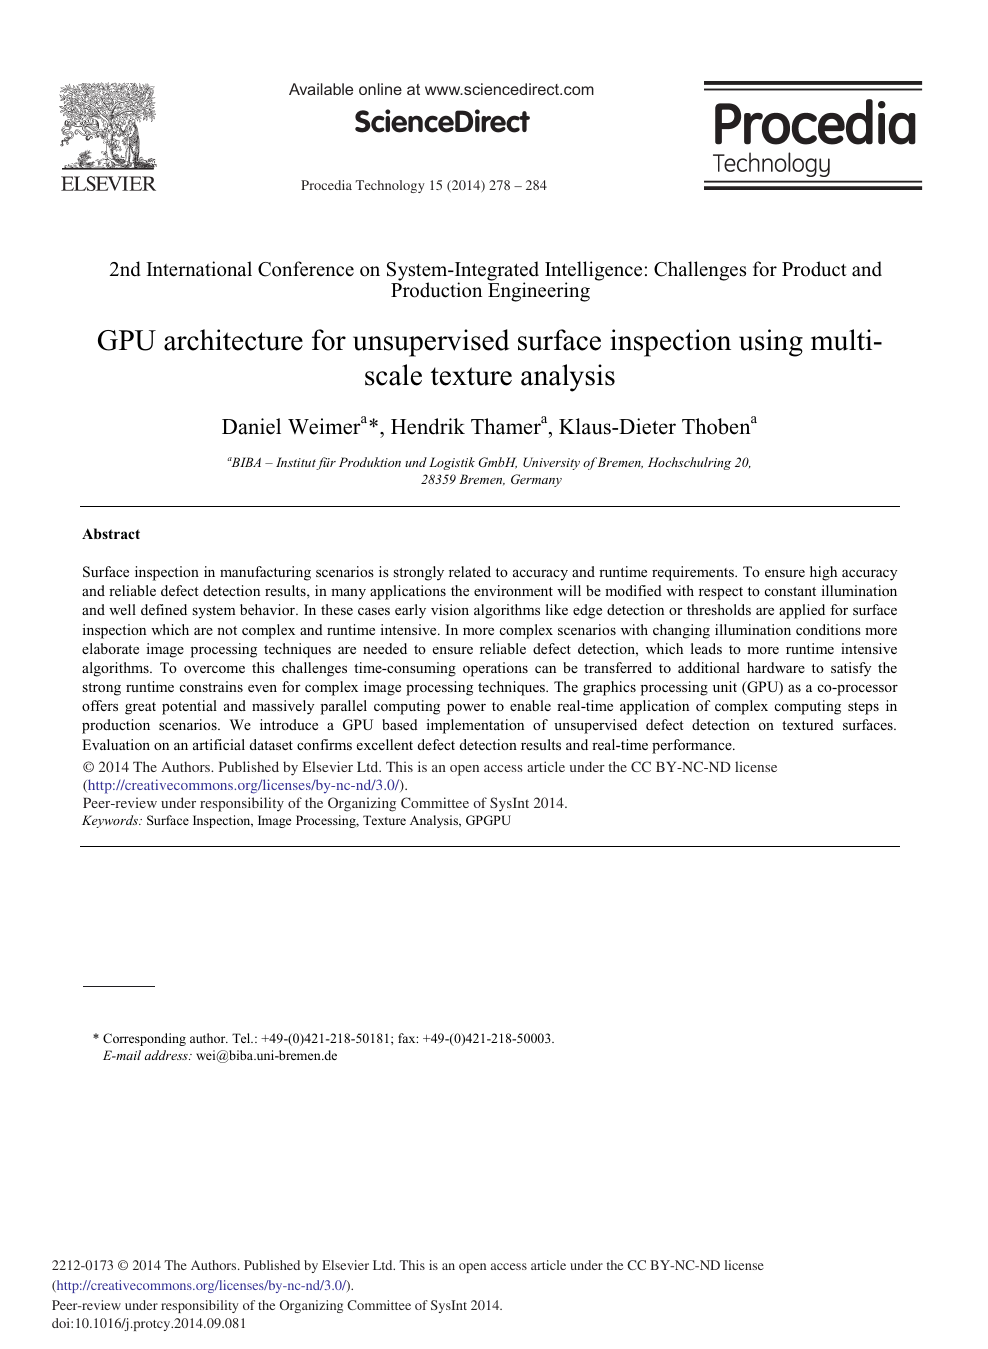 GPU Architecture for Unsupervised Surface Inspection Using